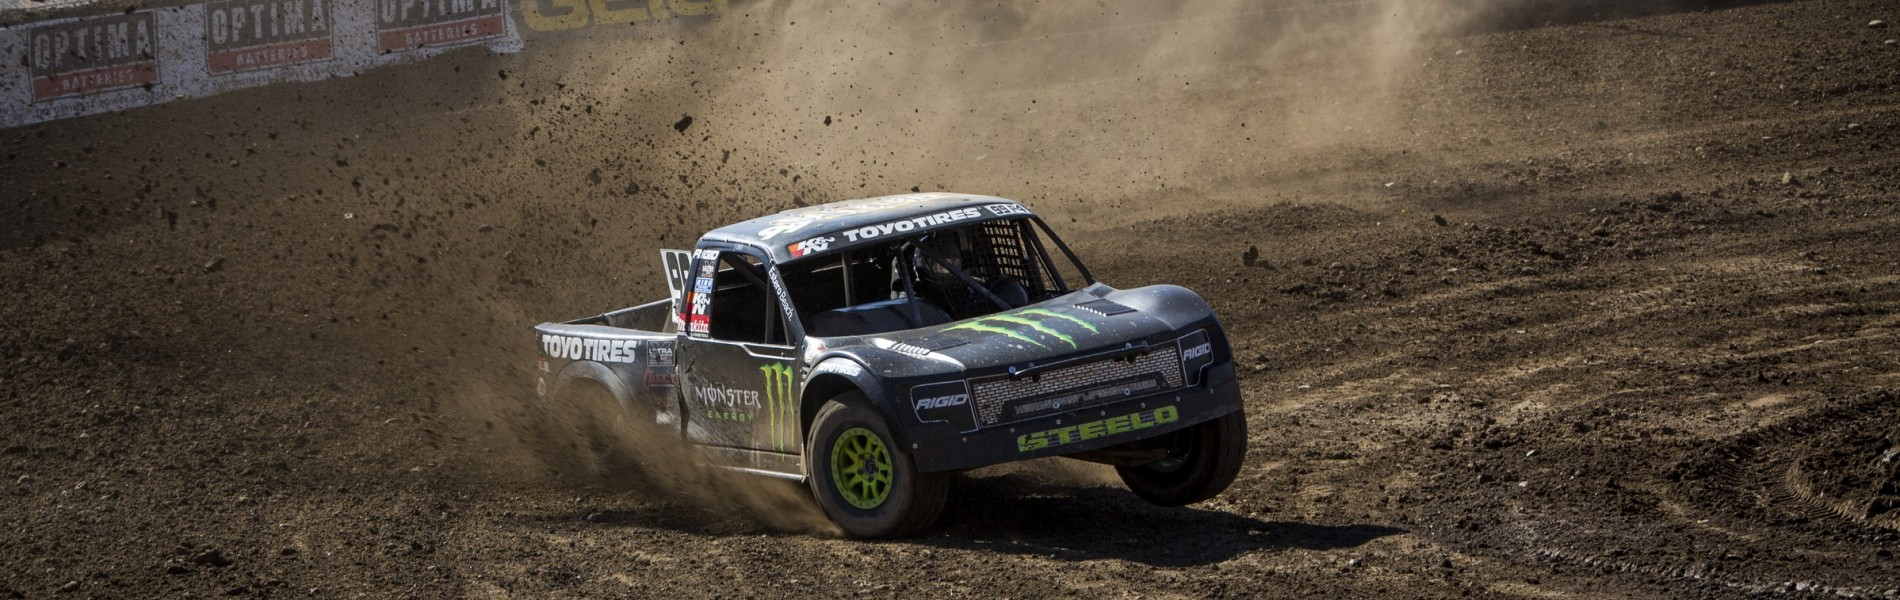 Kyle Leduc during the 2016 LOORS Off Road race in Reno, Nevada